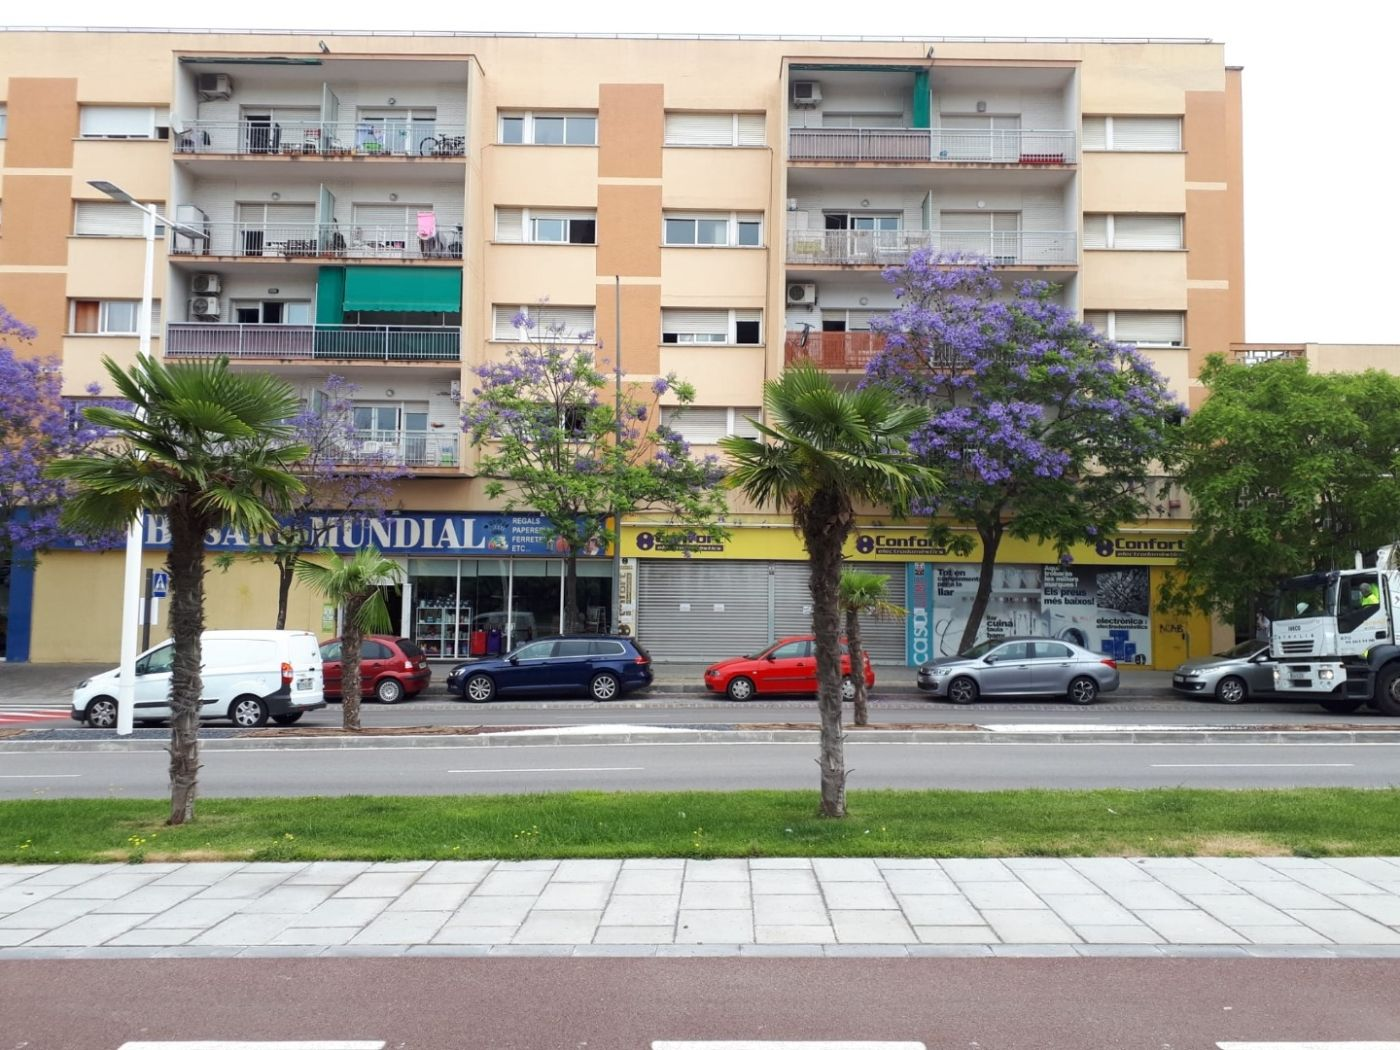 Lloguer Local Comercial en Carretera de martorell 12. Local de 600 m2 bien situado